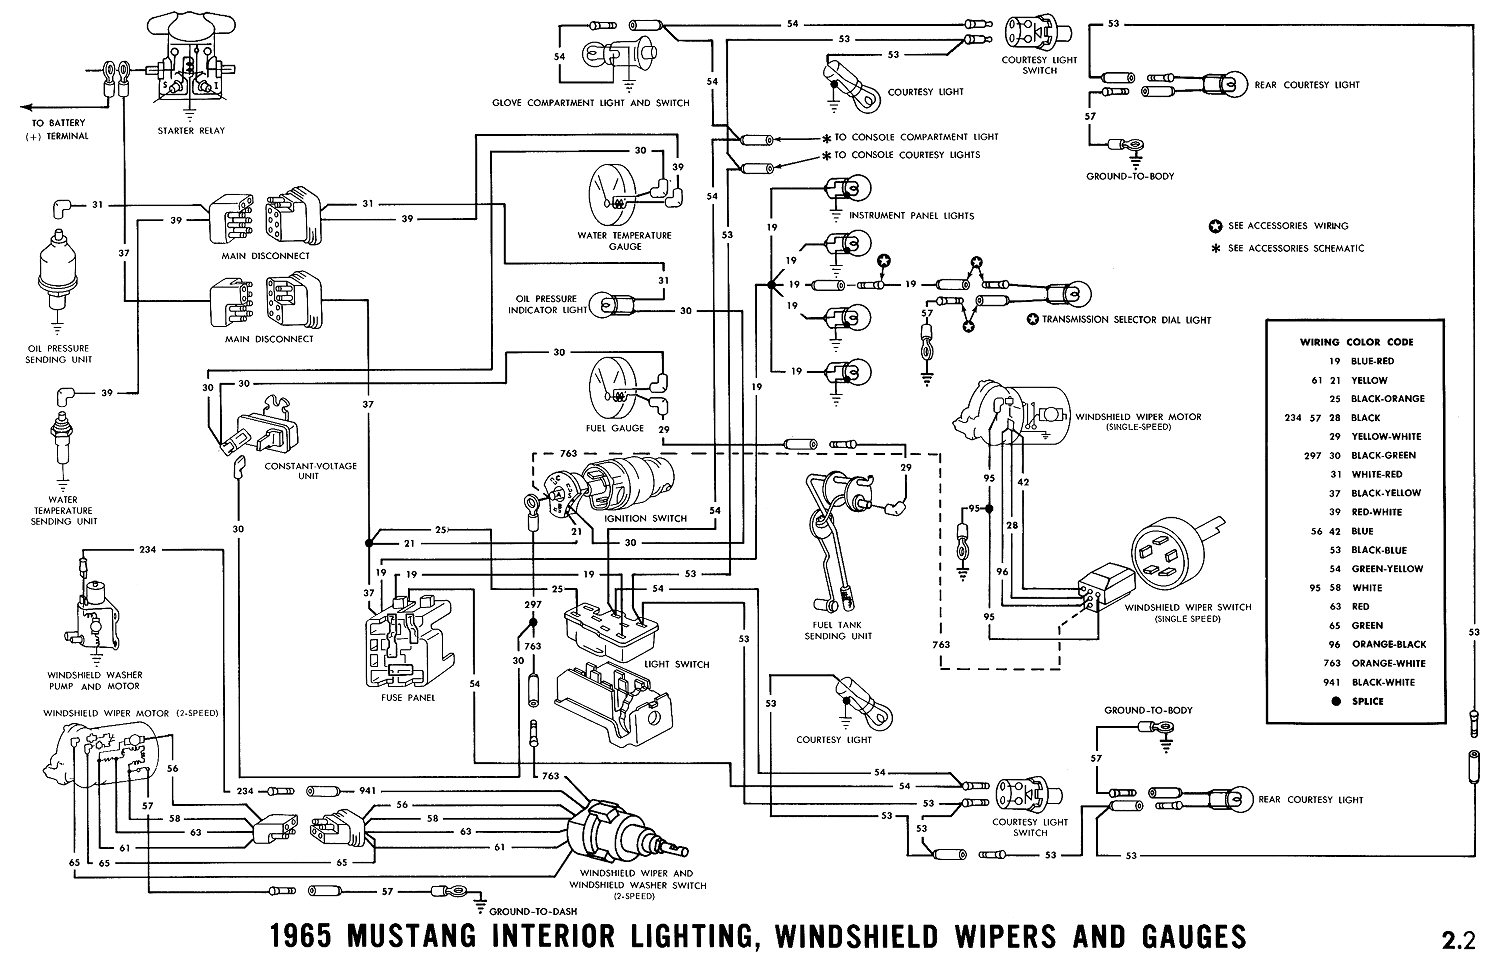 1965 Mustang Fuel Sending Unit Wiring Diagram Library 1966 Mercury Comet